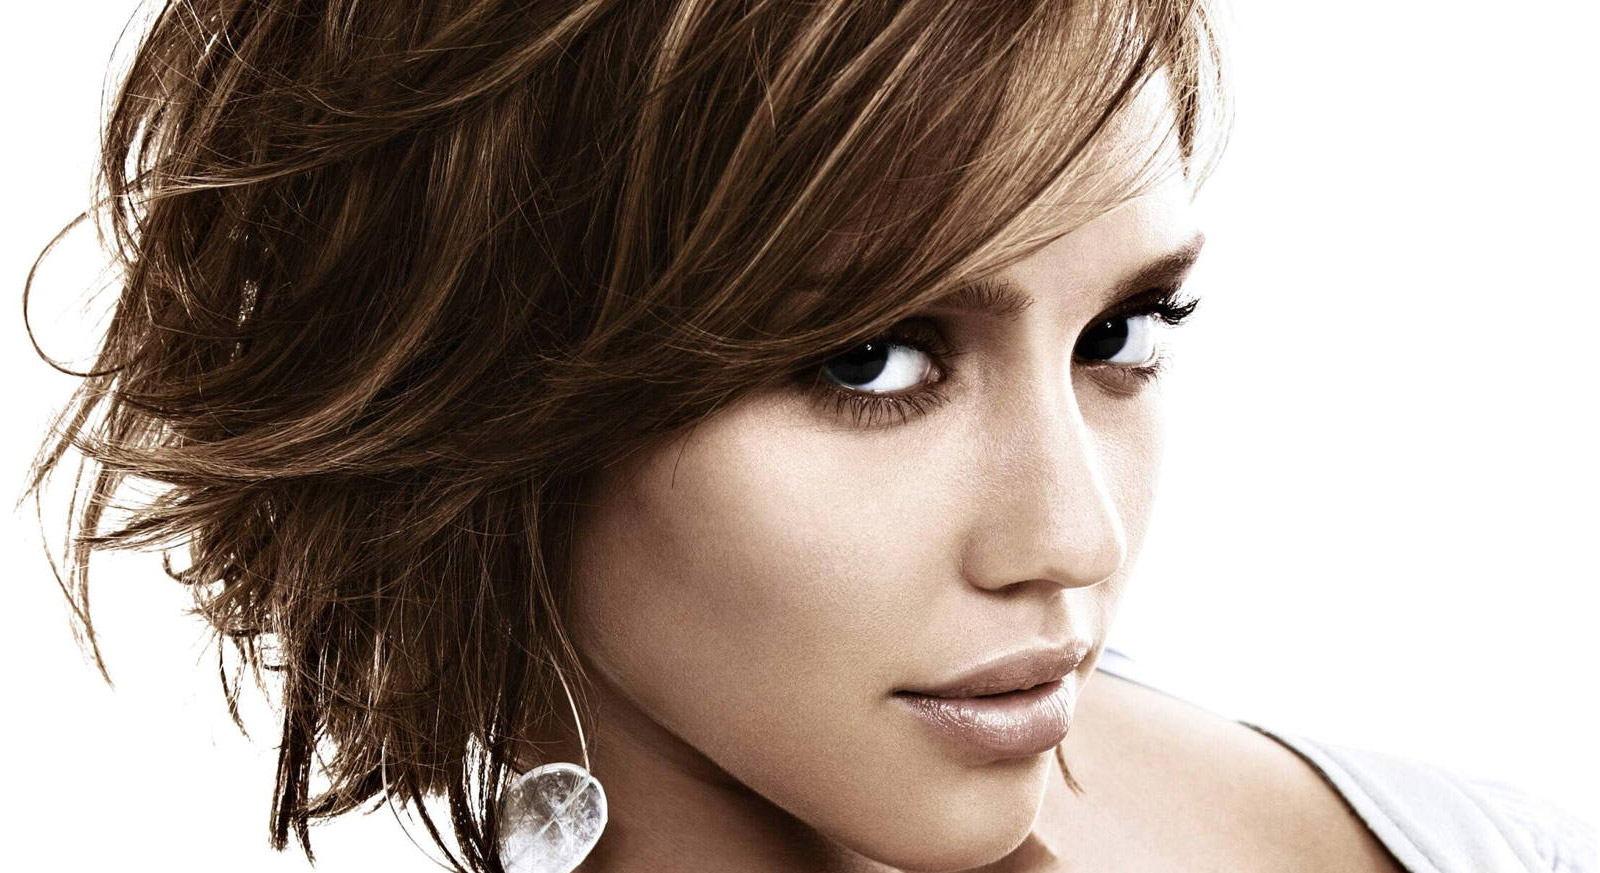 50 popular exciting short hairstyles for women 2016 - 1   women's